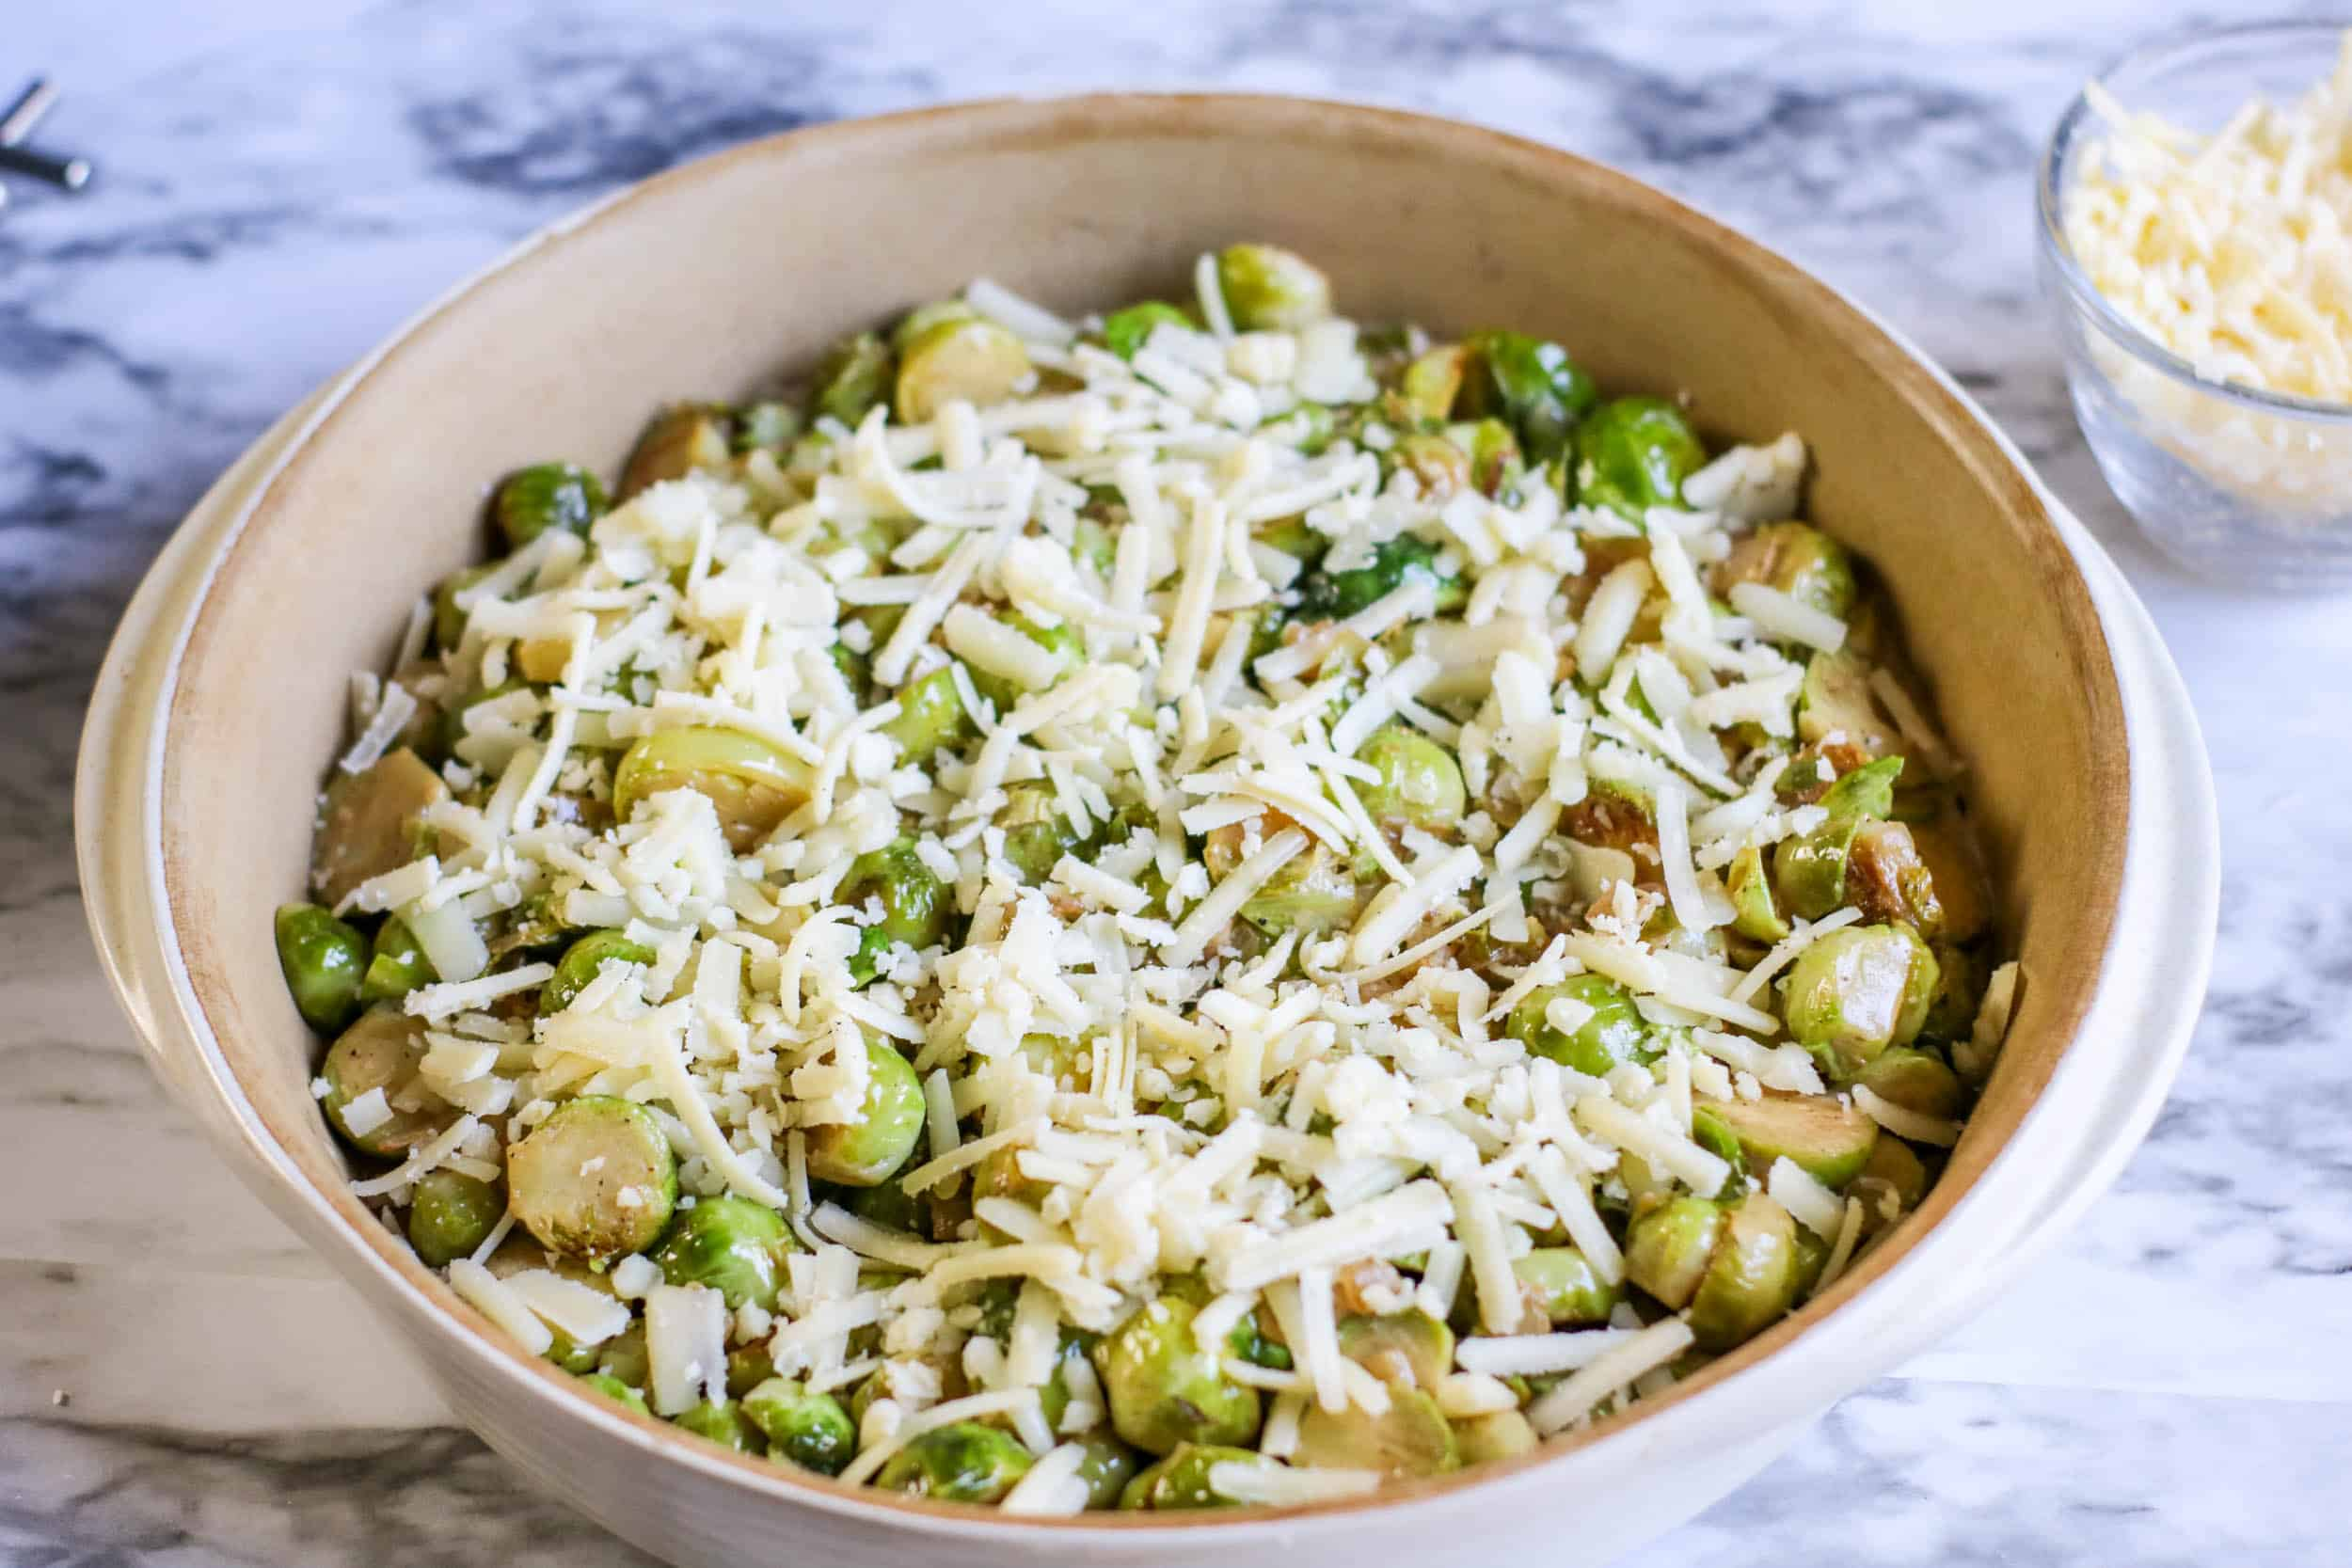 Brussels sprouts with cheese in a casserole dish on a white marble background.